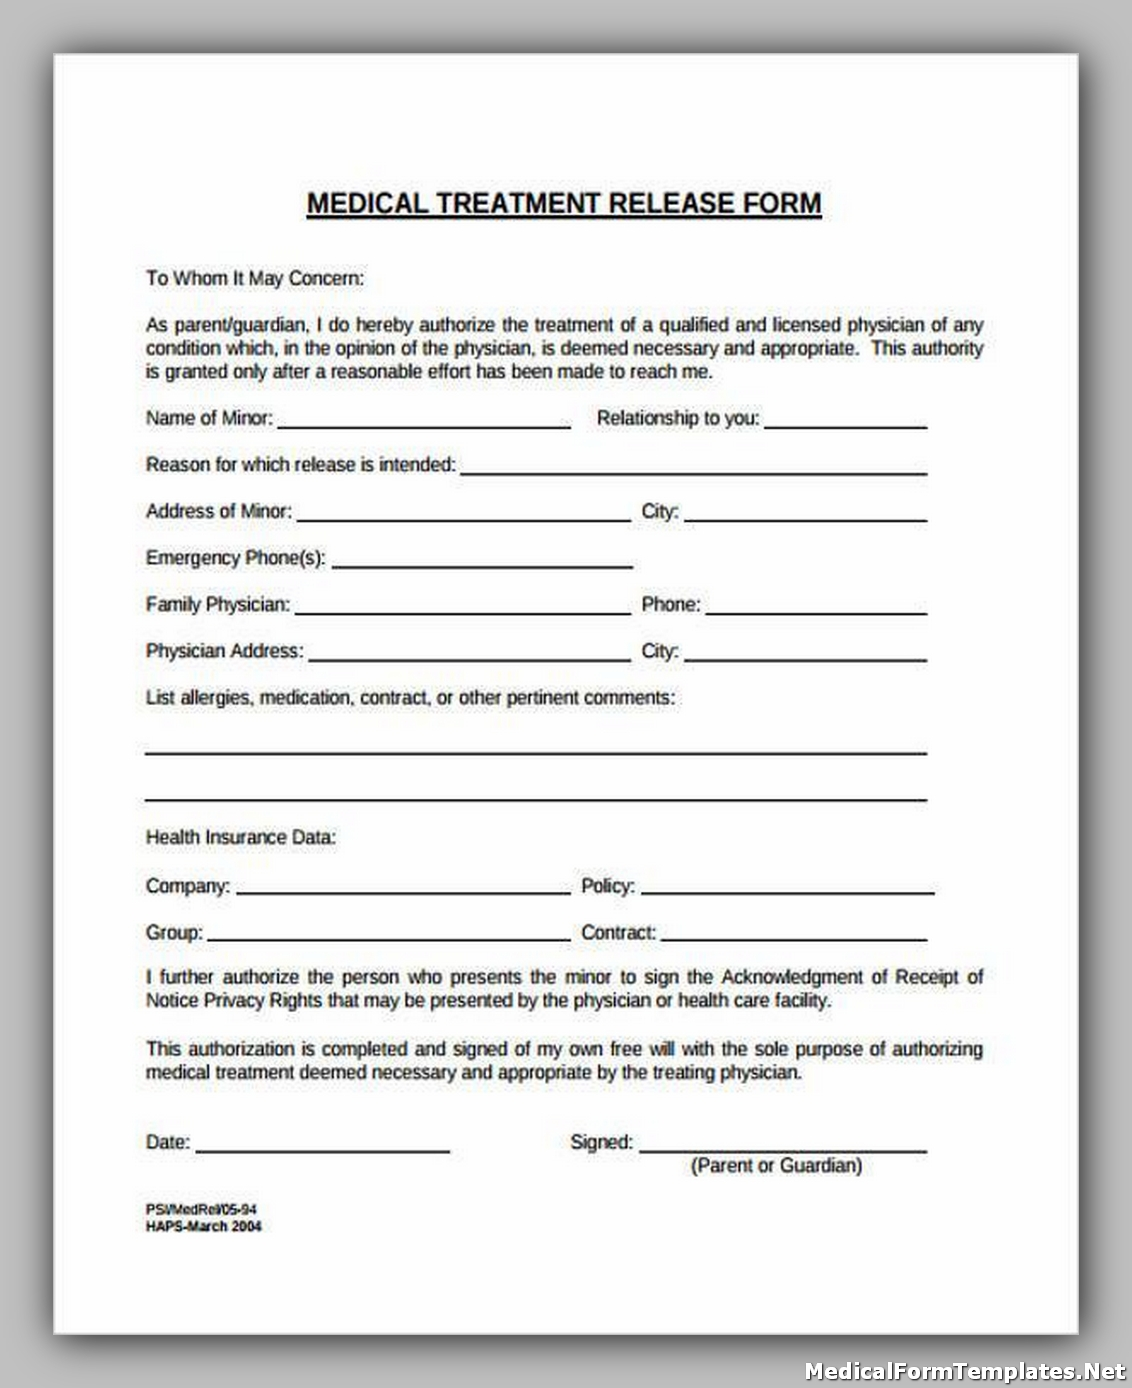 Medical Treatment Release Forms1